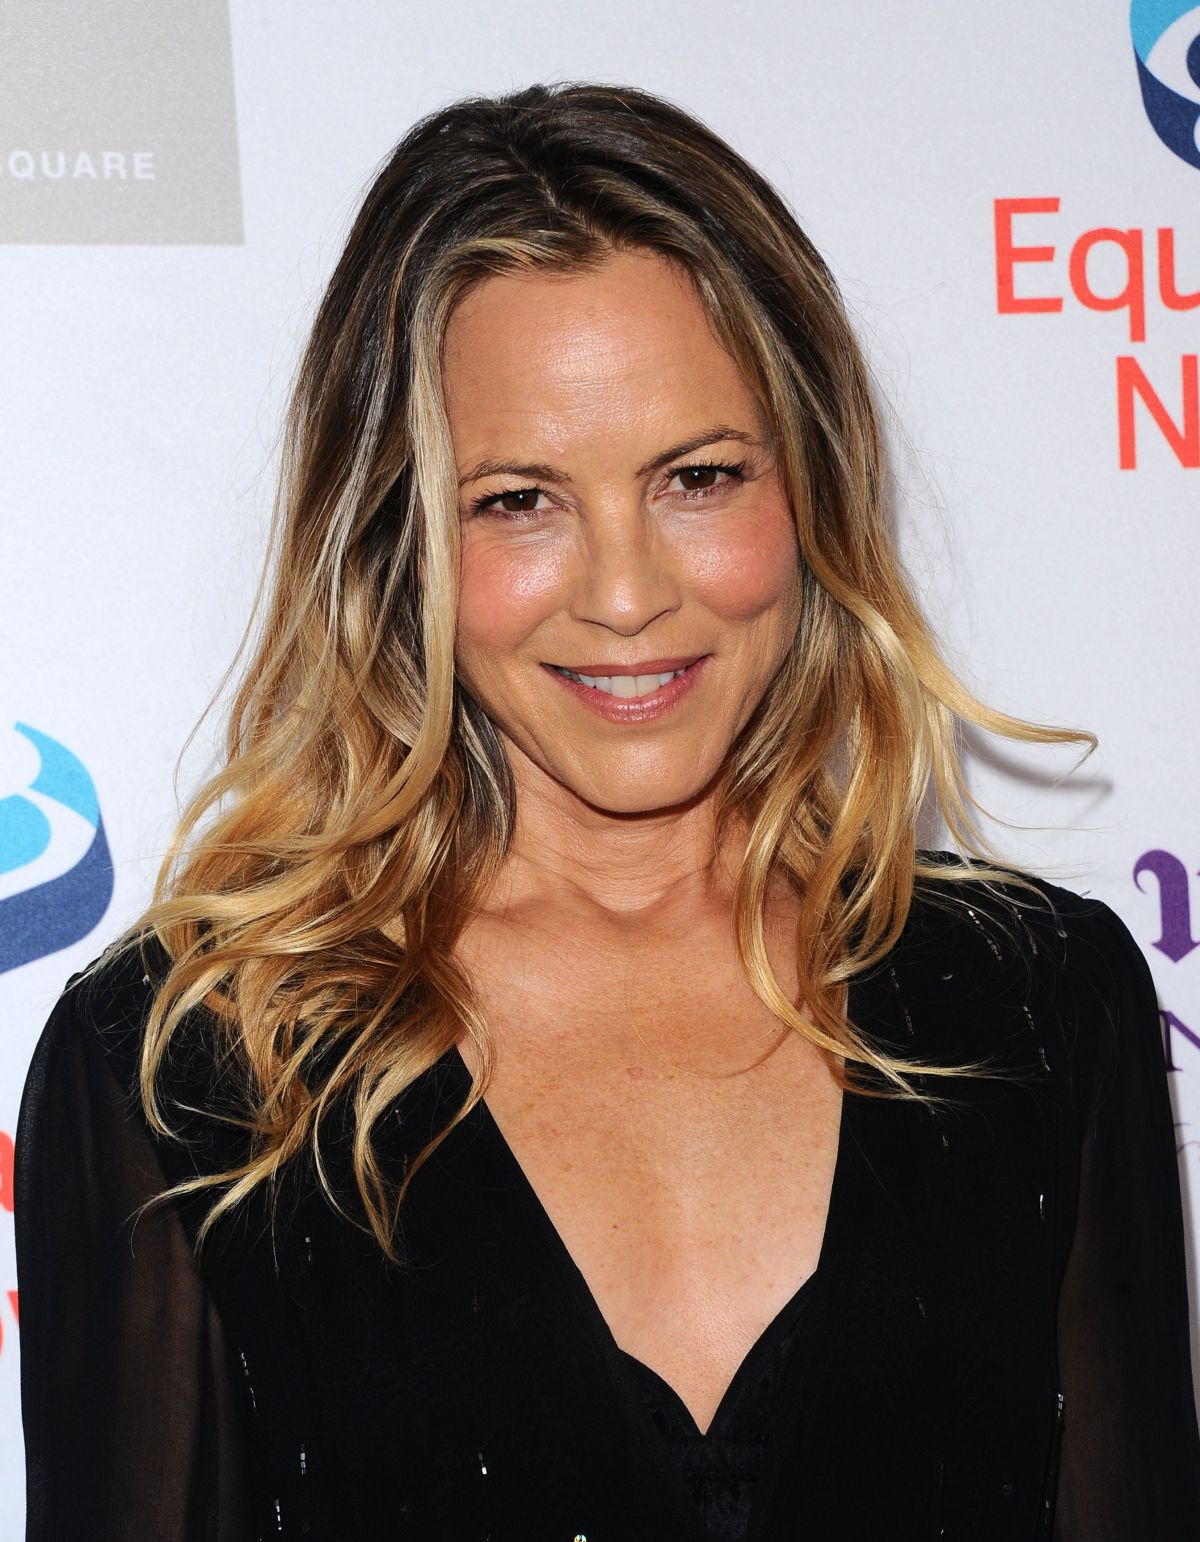 MARIA BELLO at 3rd Annual Make Equality Reality Gala in Beverly Hills 12/05/2016